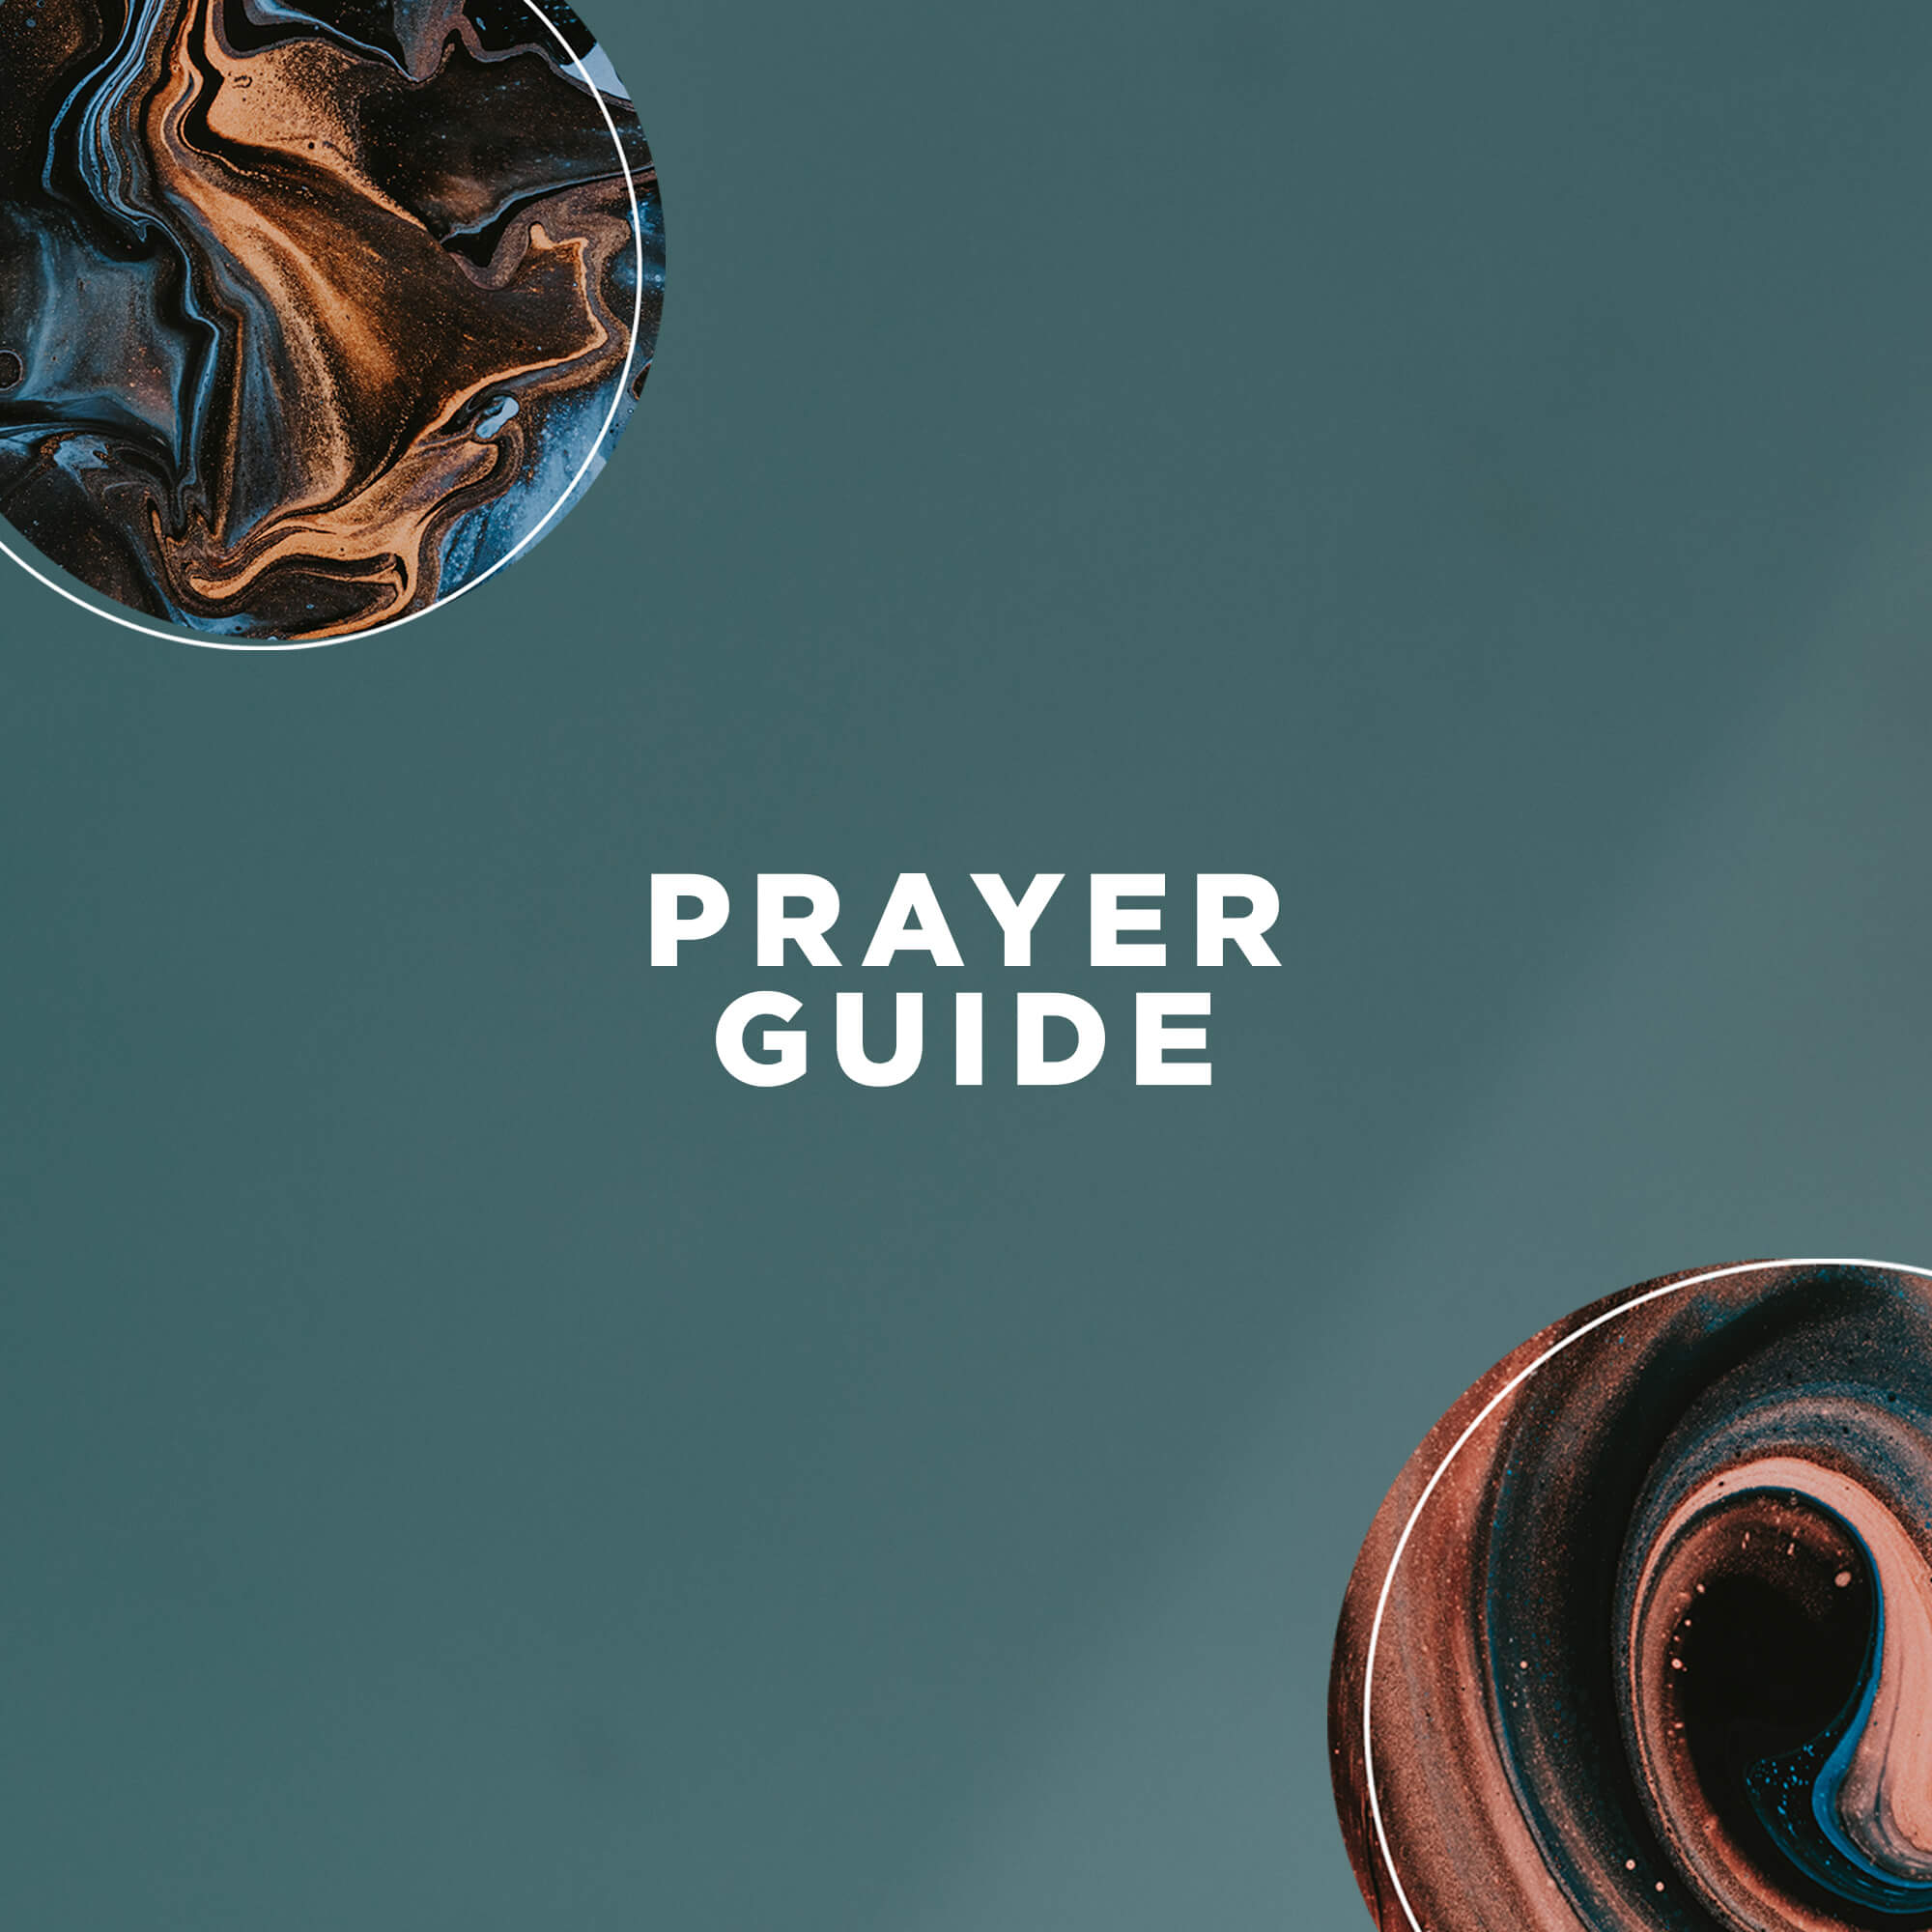 21 Days of Prayer and Fasting 23